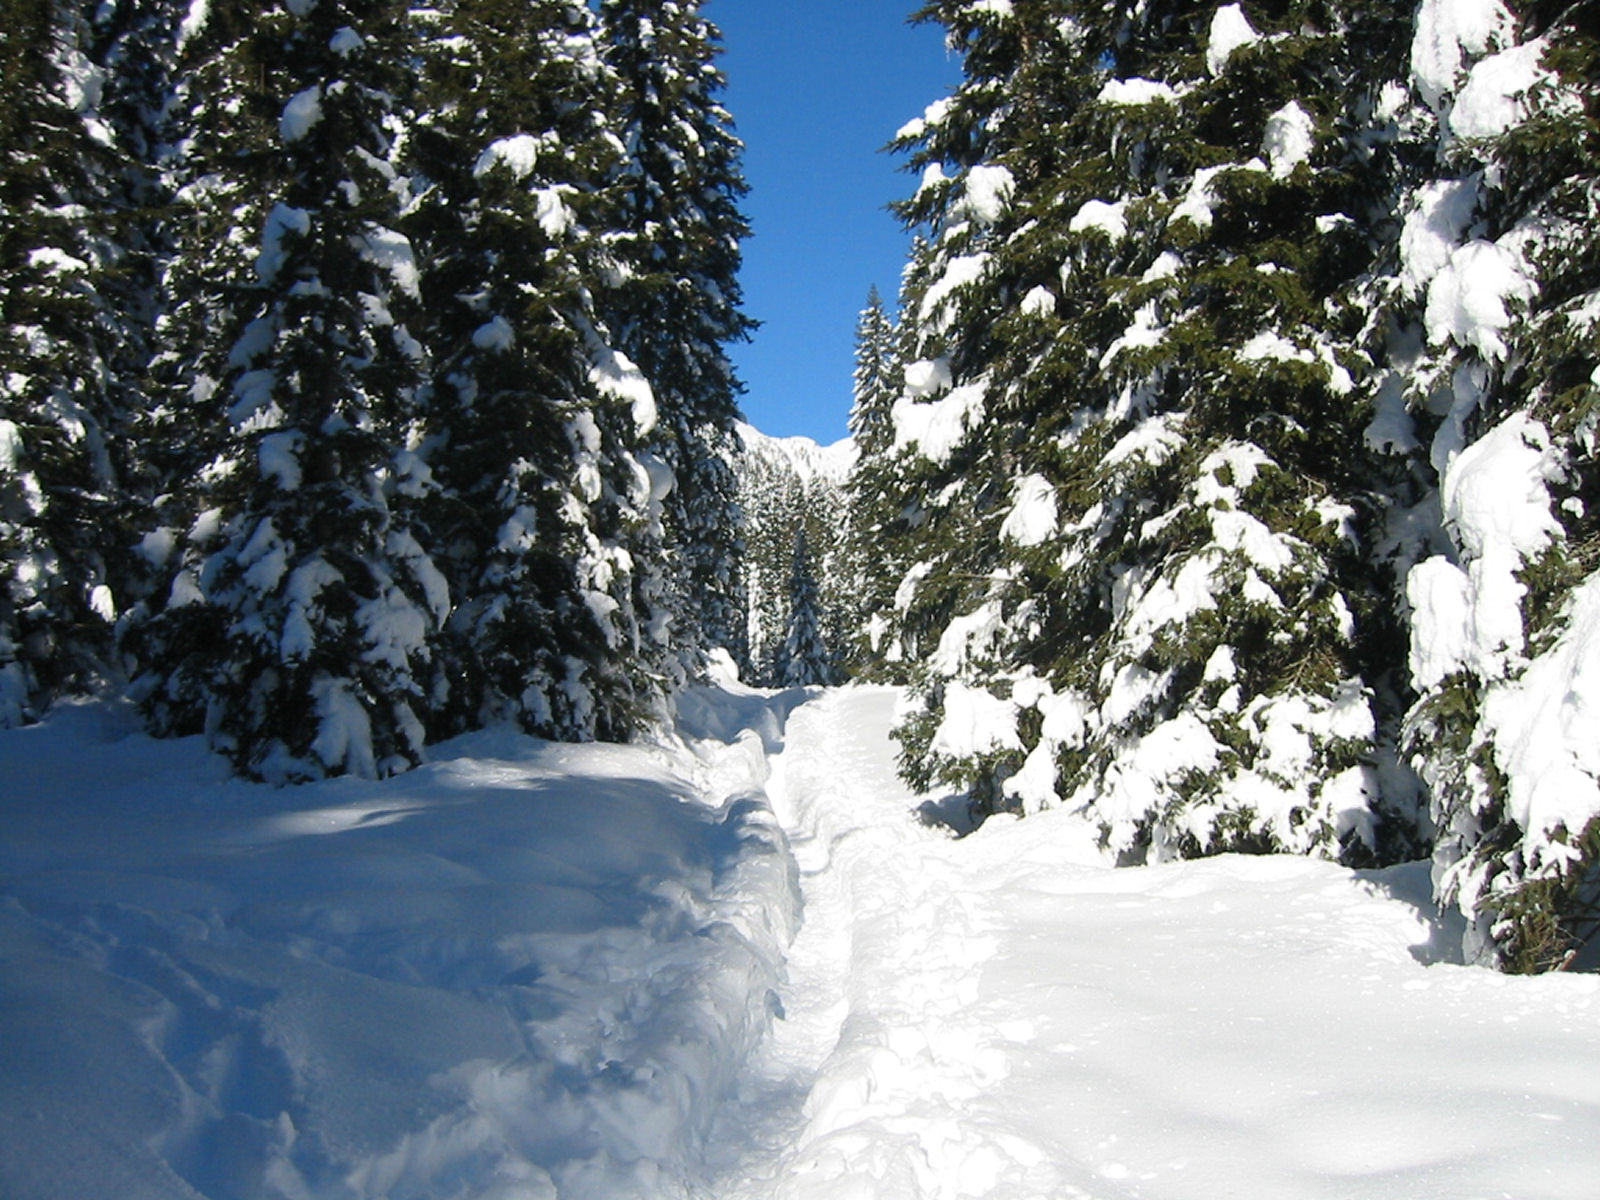 Pokljuka forest in winter, Slovenia